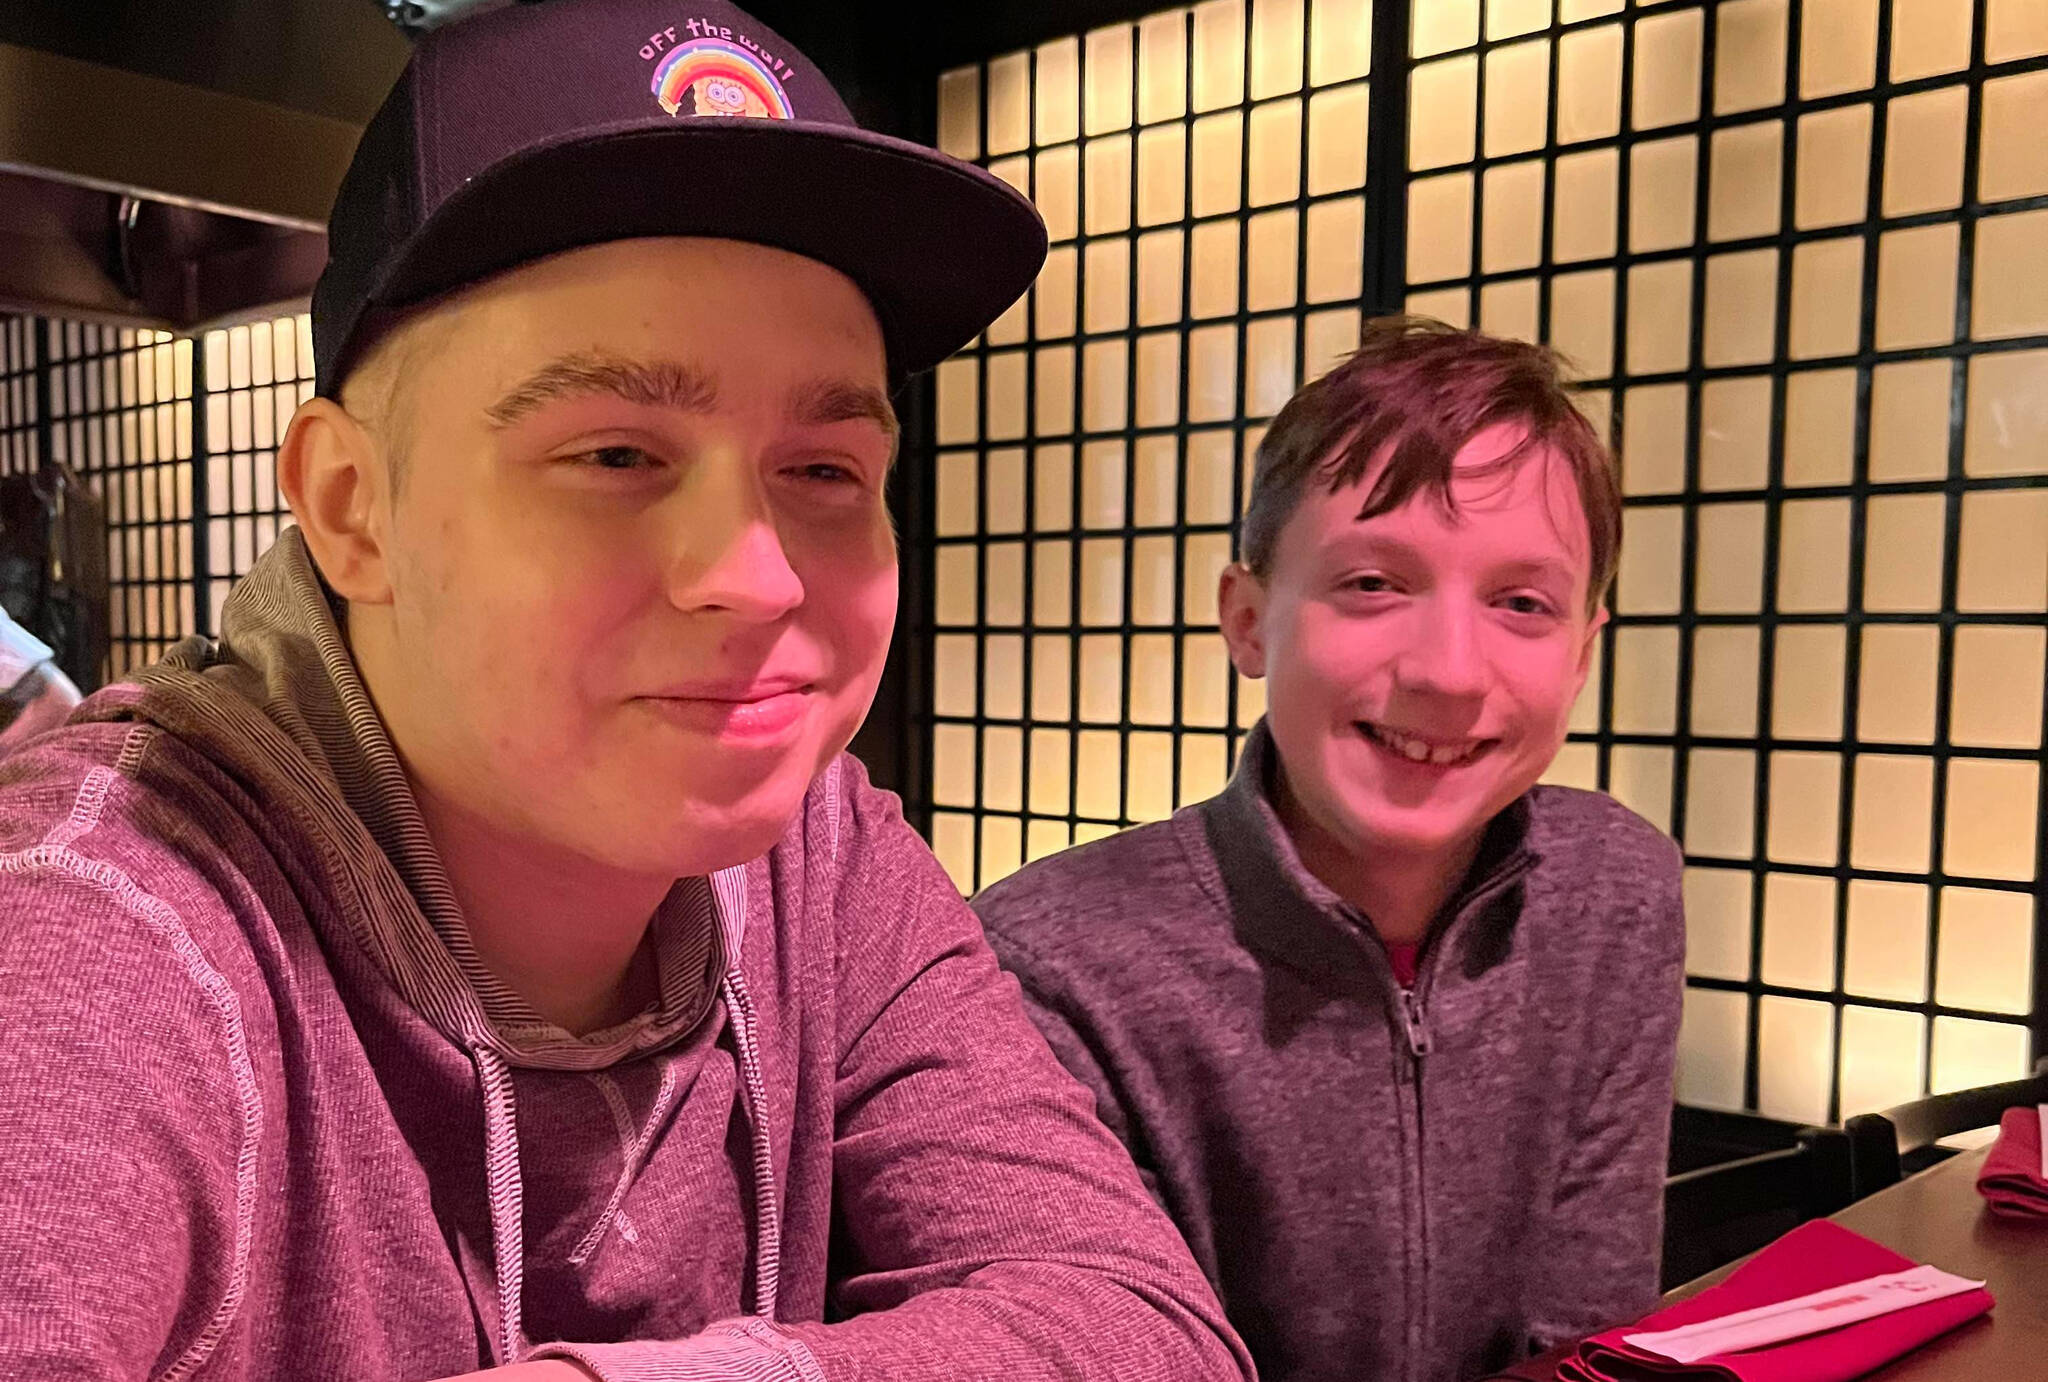 To celebrate finishing his first round of chemotherapy, Addison Johnston (left) and his younger brother Ryland were taken to a Japanese restaurant in Vancouver by parents Kristin and Shane Johnston. But lots of treatment remains for the teenager, and his family has learned some hard lessons about the healthcare system. (submitted photo)